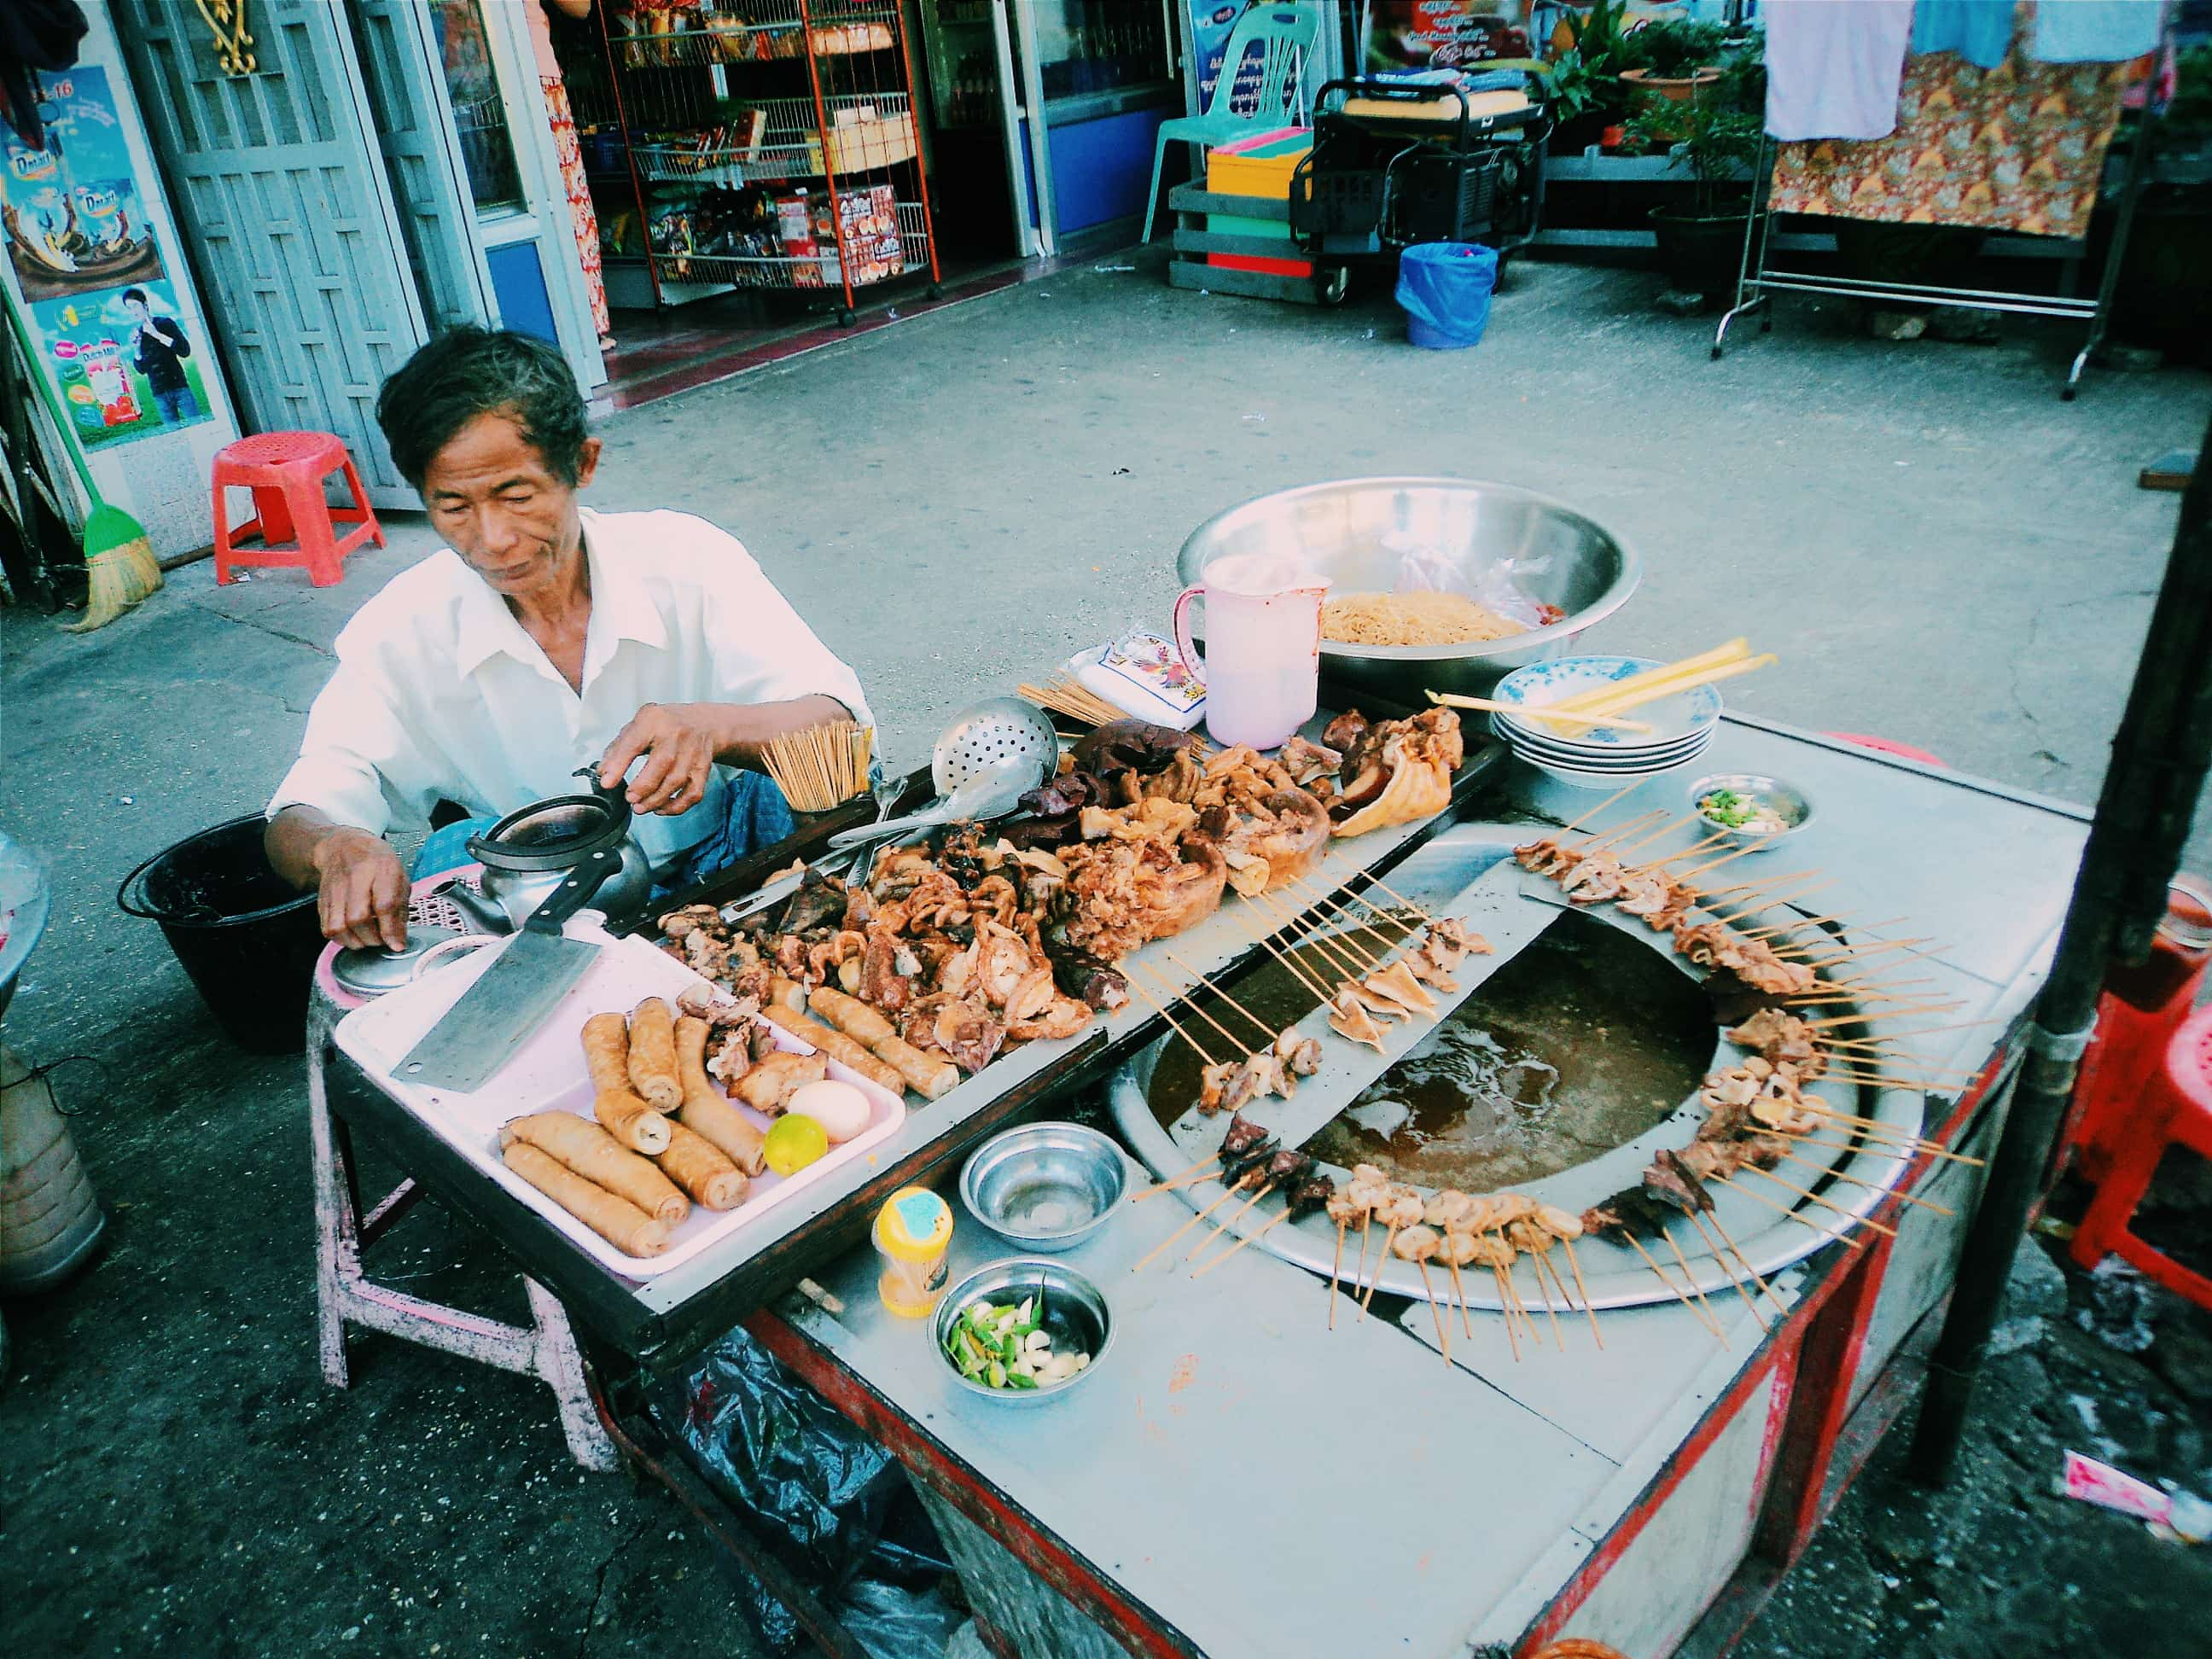 Barbecue. Travel Myanmar in a low budget.